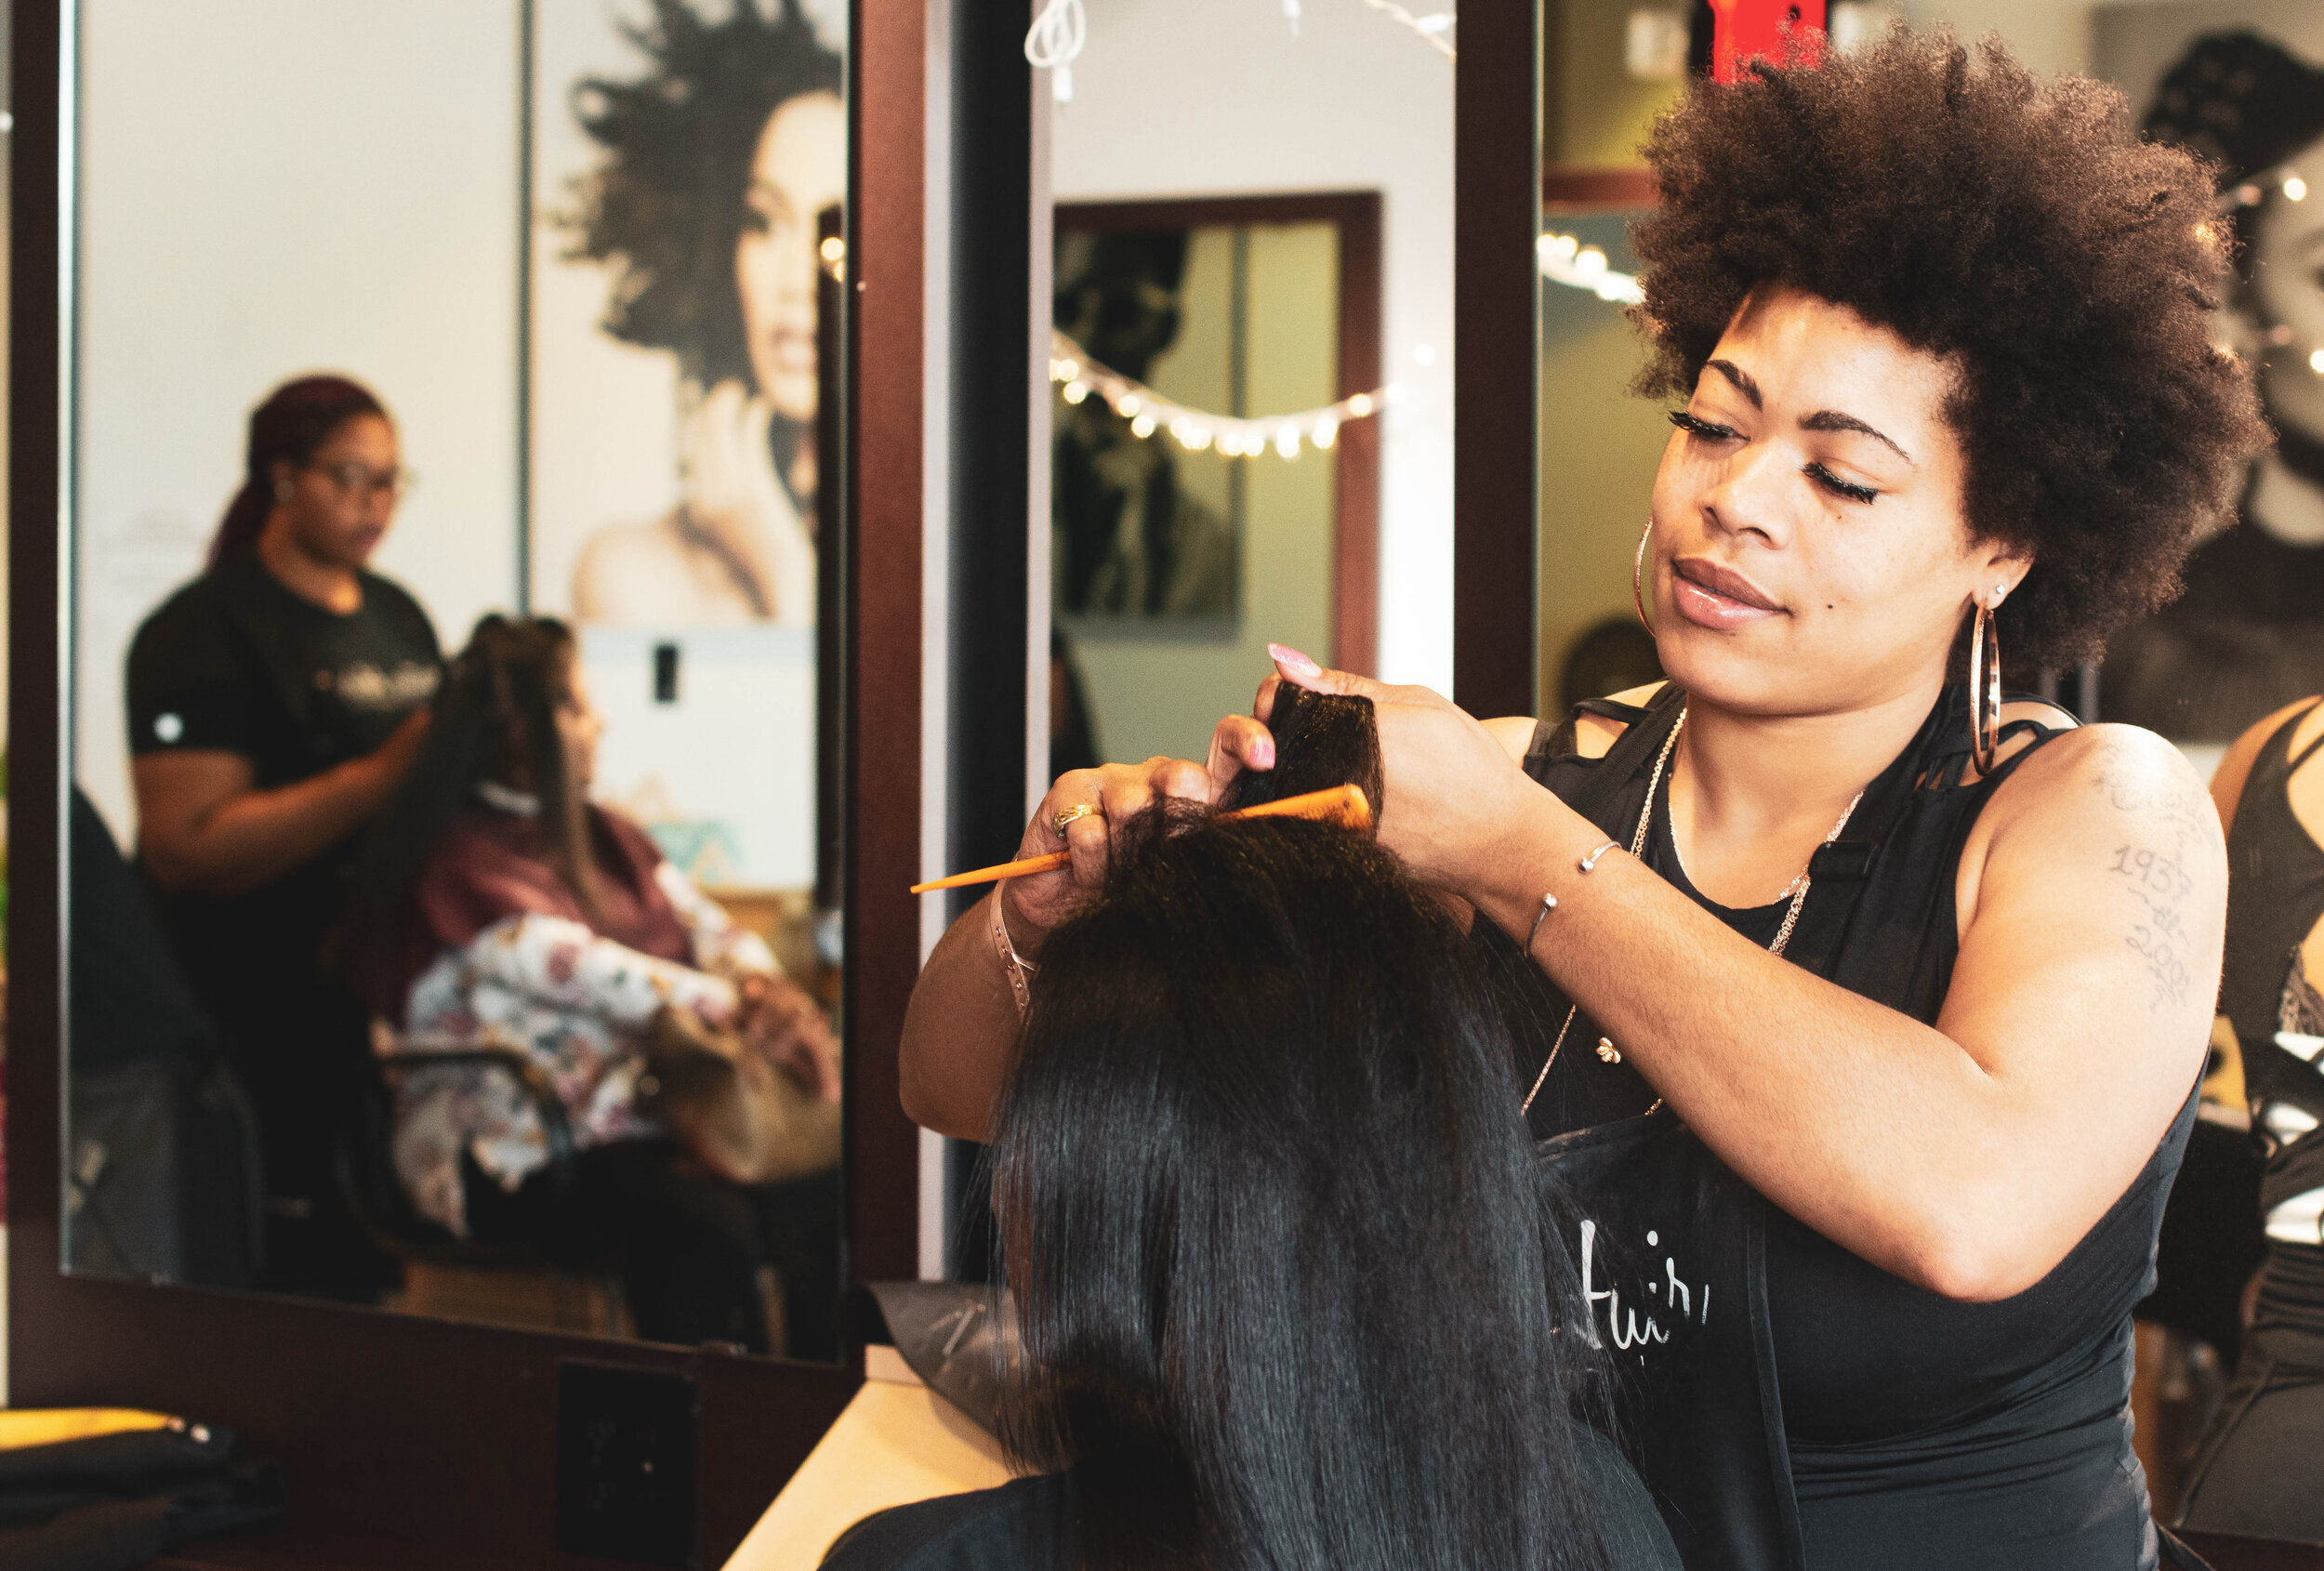 Cosmetology   Prepares students training in styling, cutting, coloring, natural, and braiding hair, manicuring, and makeup.   Learn More  →